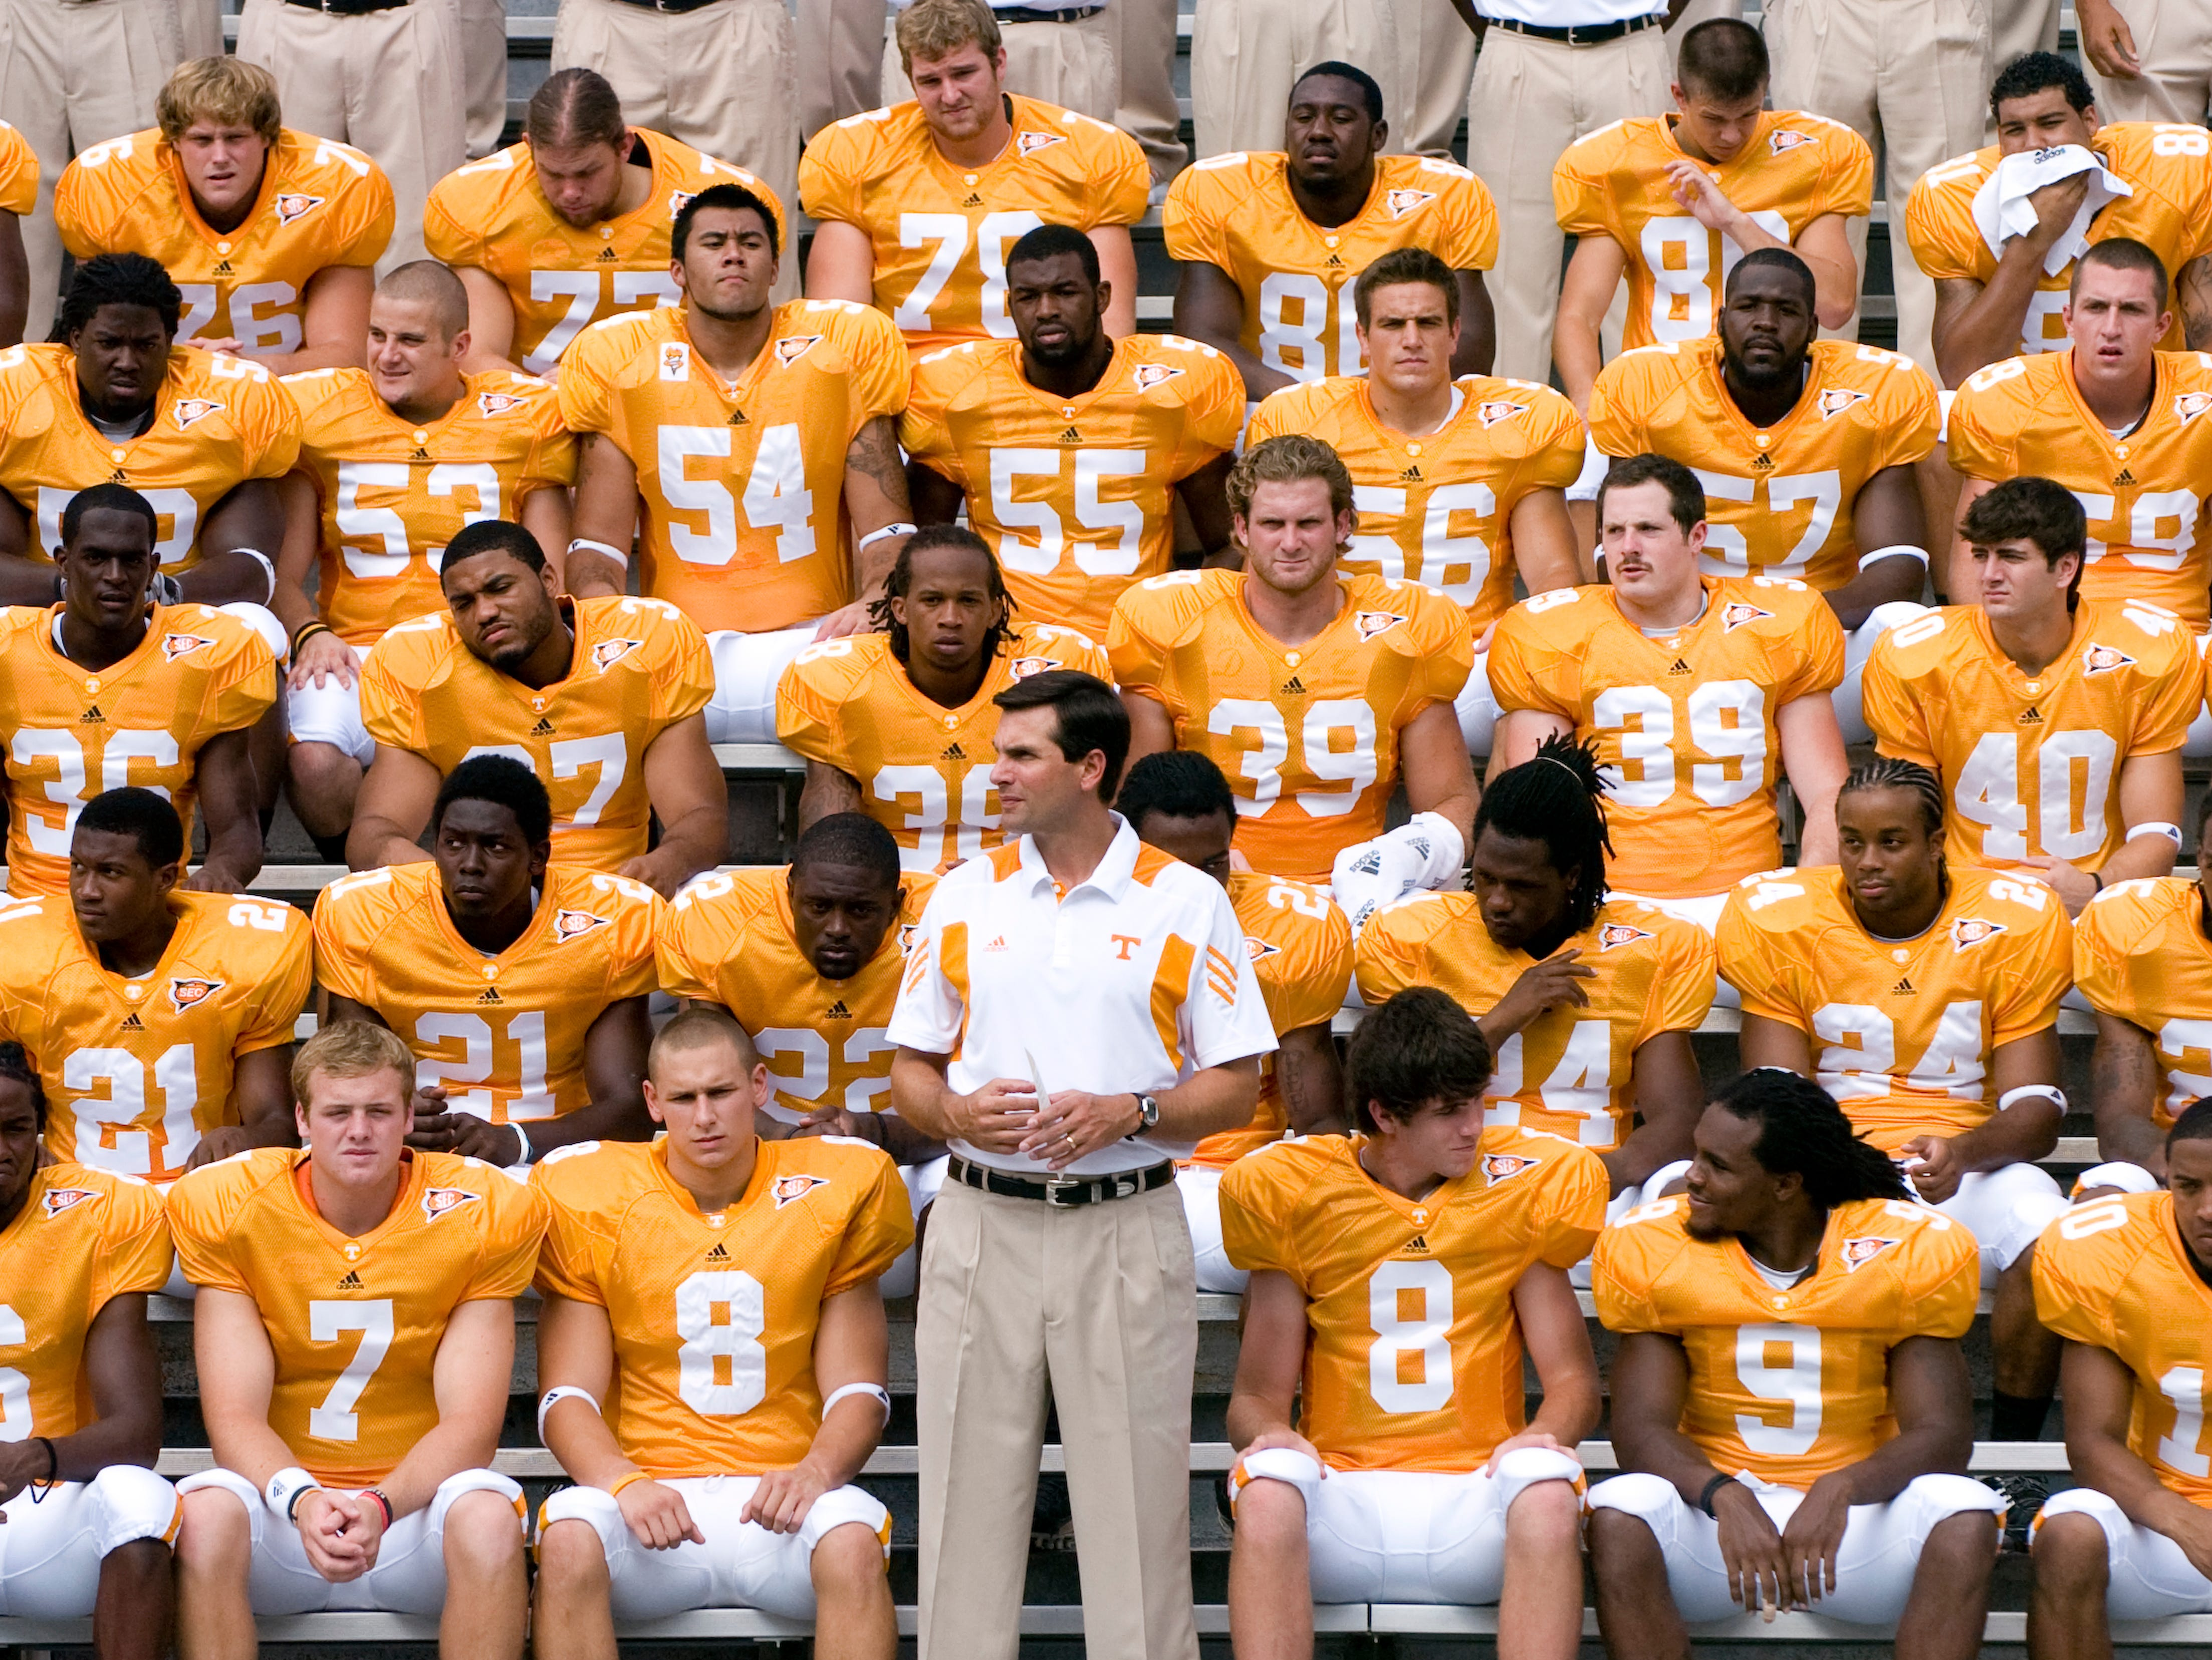 Tennessee head coach Derek Dooley stands with the Tennessee football team just before having their group photograph taken. 